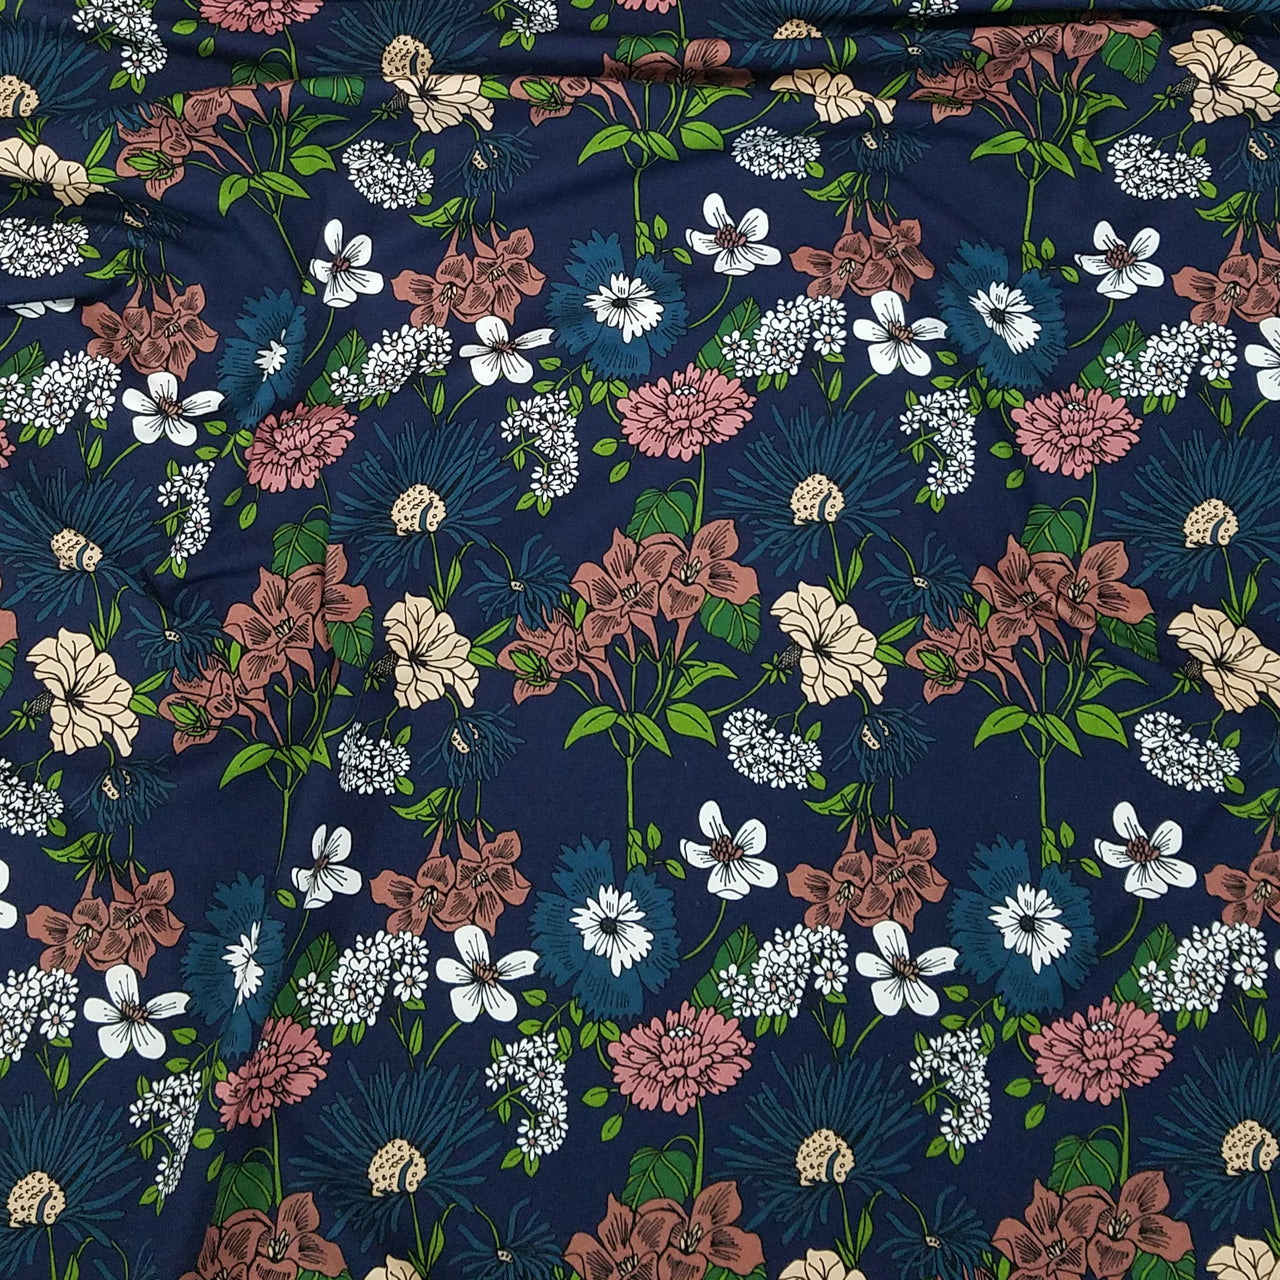 Midnight Blooms Jersey, Dark Blue by PelhoDesign